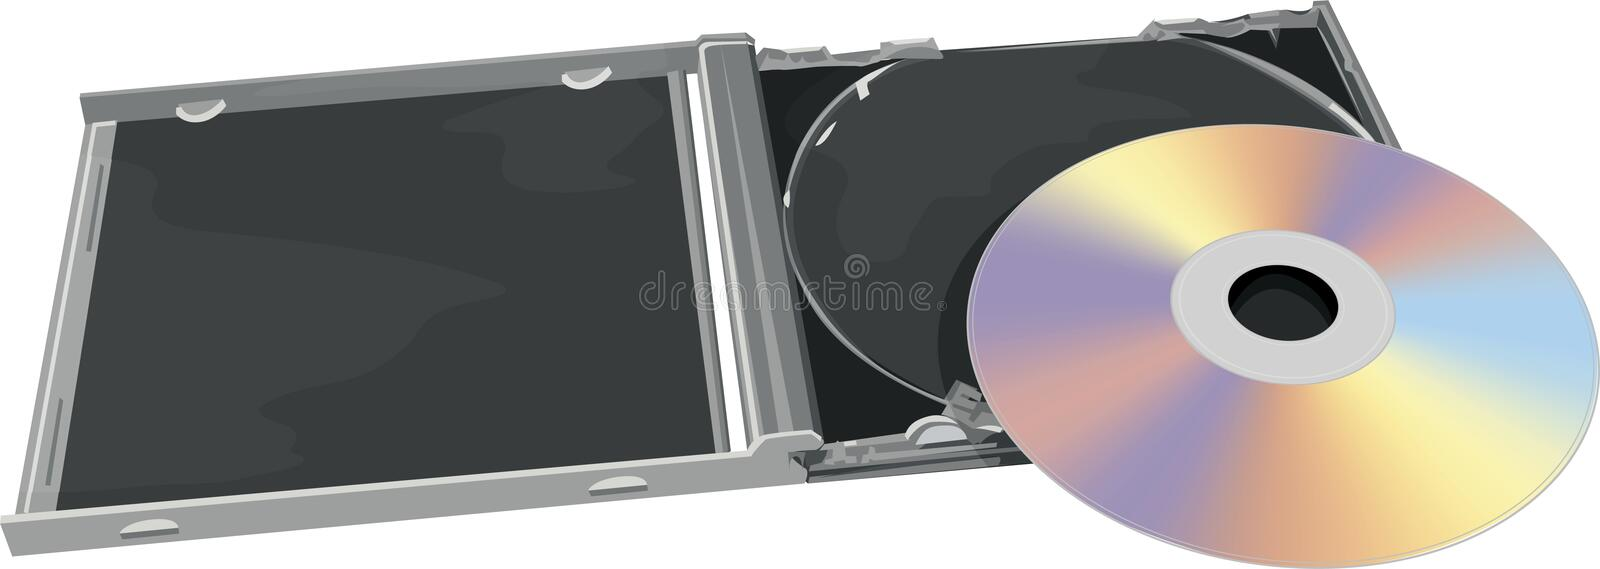 CD and jewel case. Realistic illustration of a CD and a jewel case WITH CLIPPING PATH stock illustration